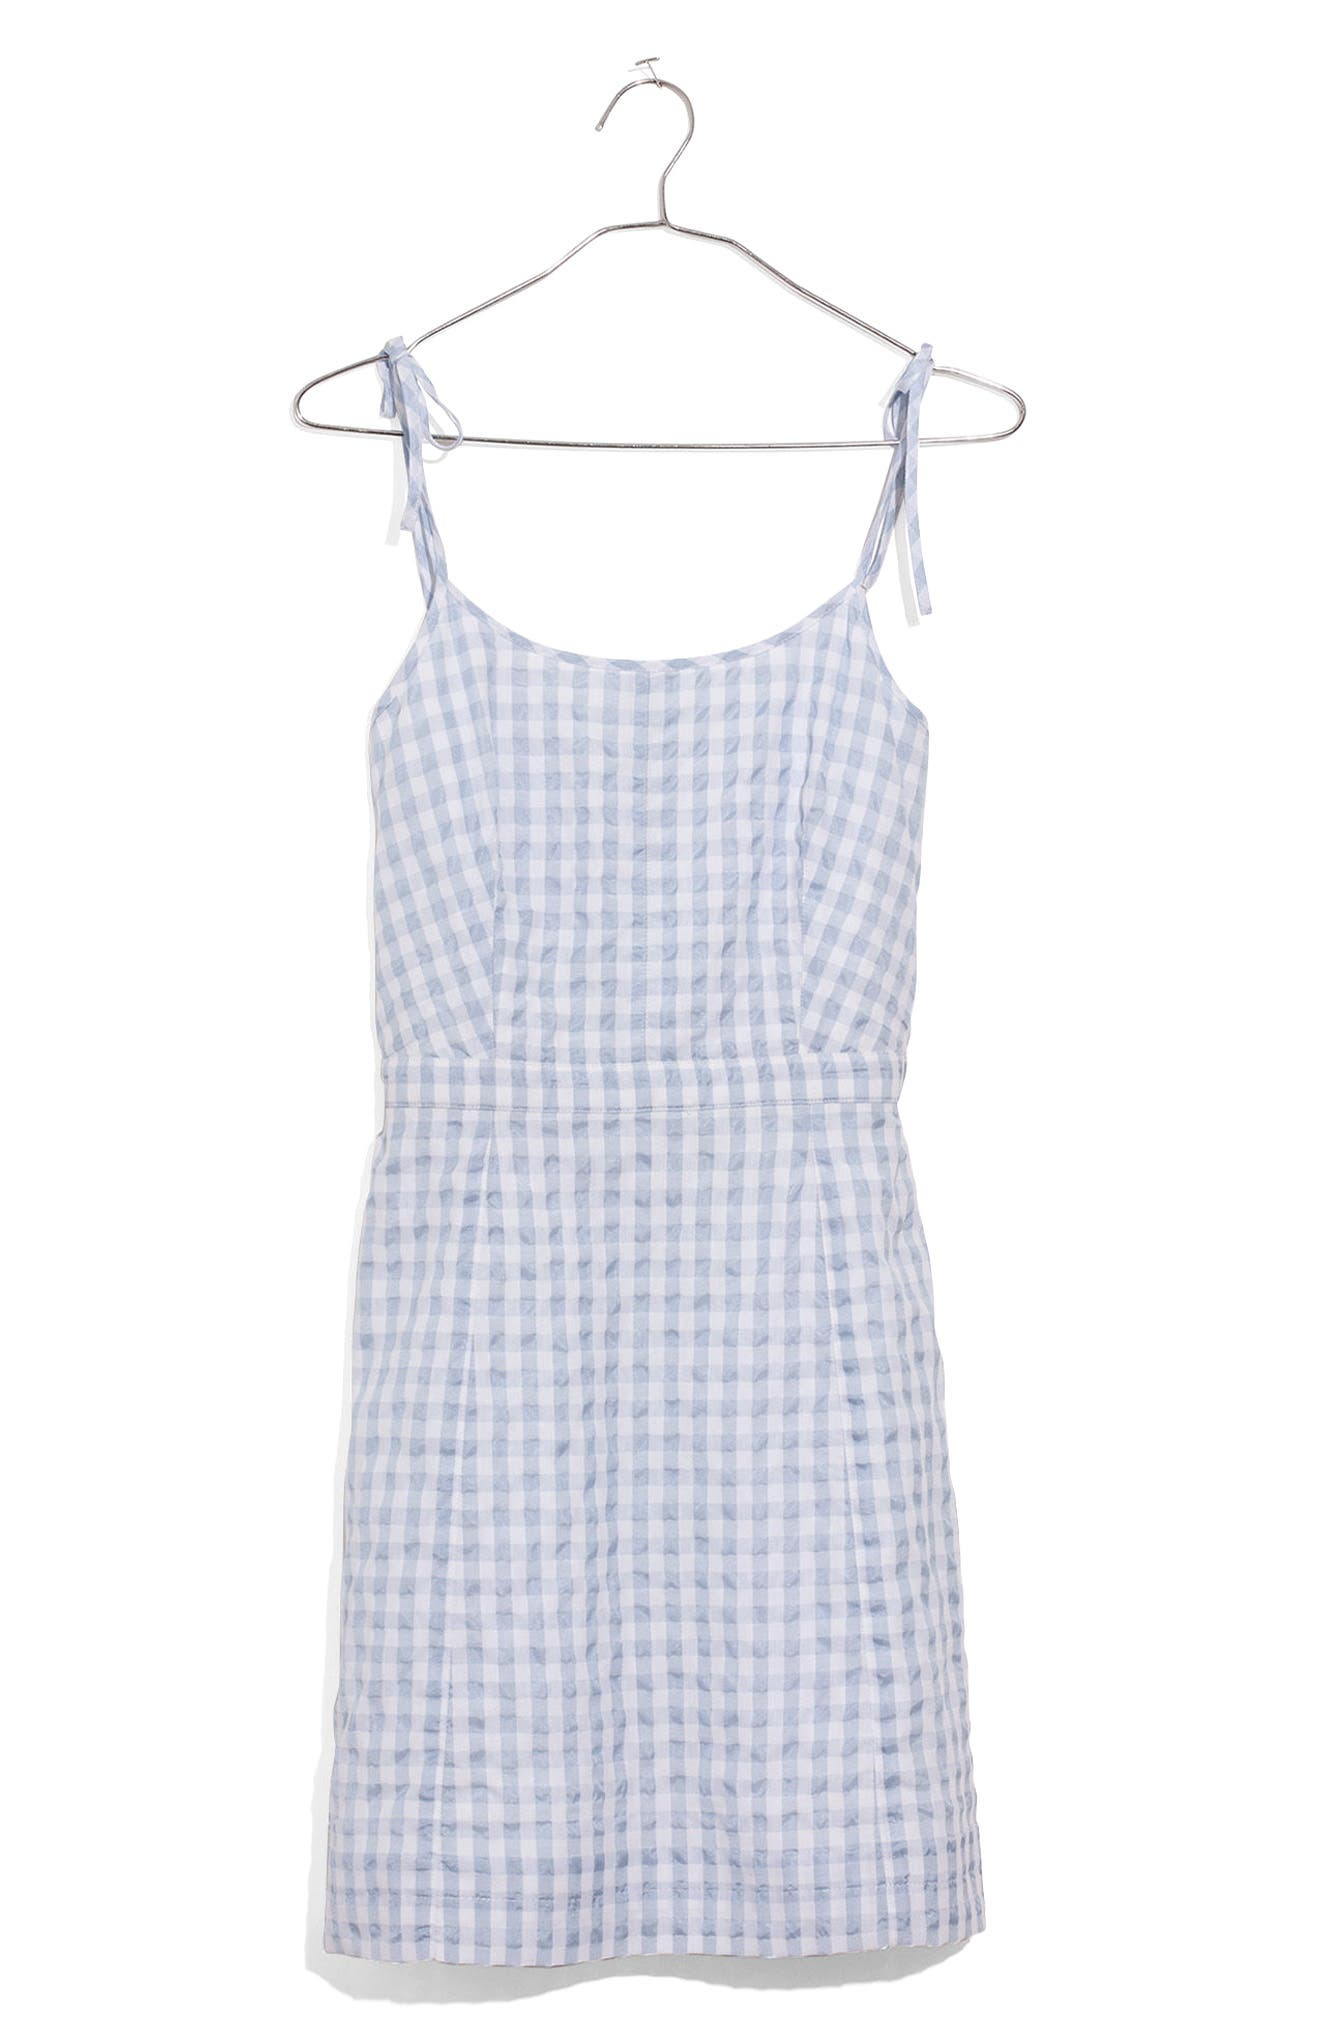 MADEWELL,                             Tie Strap Gingham Dress,                             Alternate thumbnail 2, color,                             400